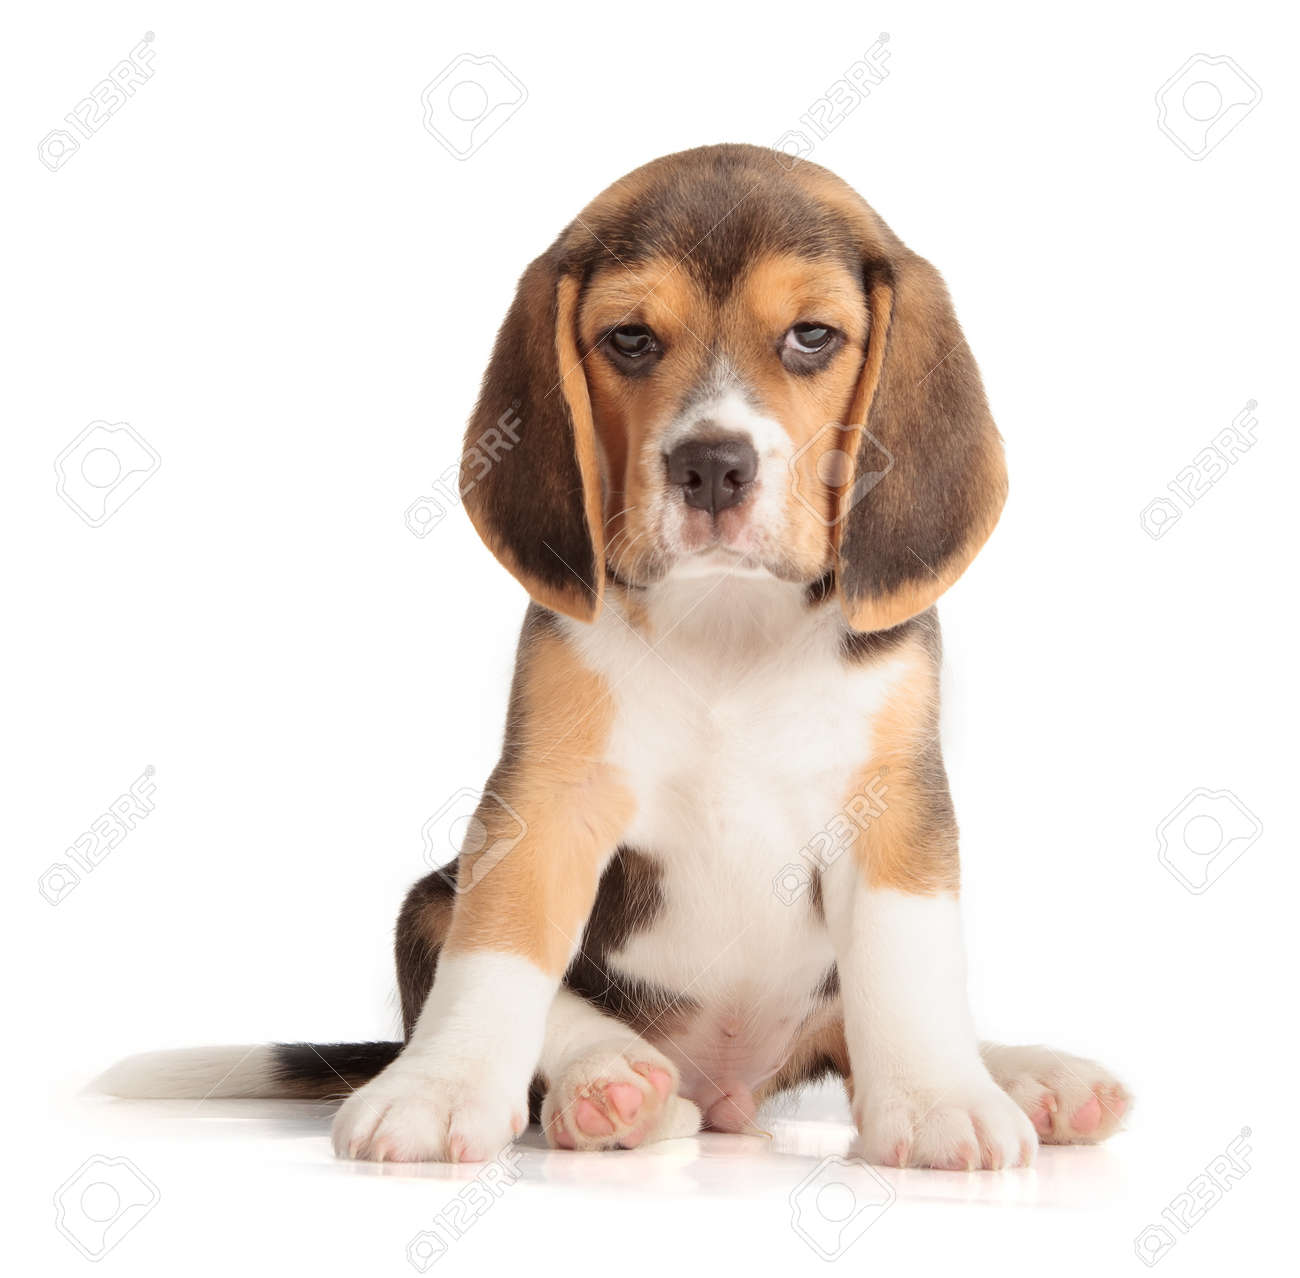 Cute beagle puppy 5 week old cute beagle puppy 5 week old 30853352 voltagebd Image collections